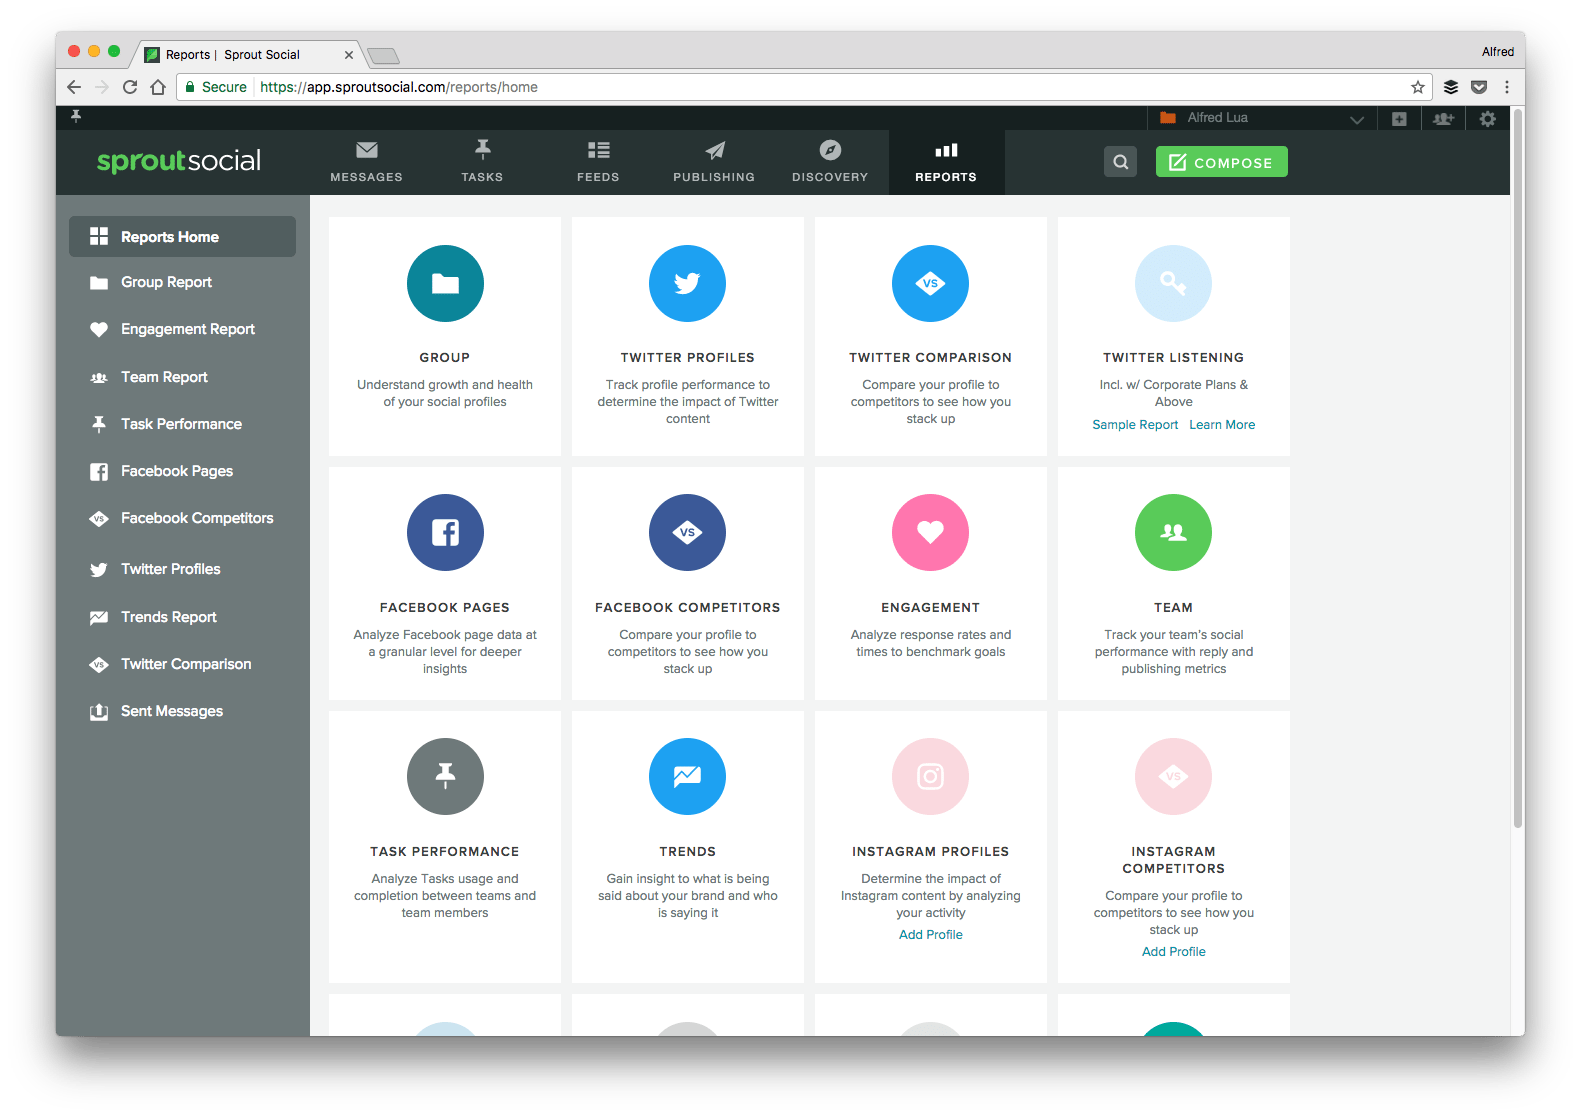 Optimize the social media platform you are using by monitoring, publishing, communicating, and analyzing in a timely manner.